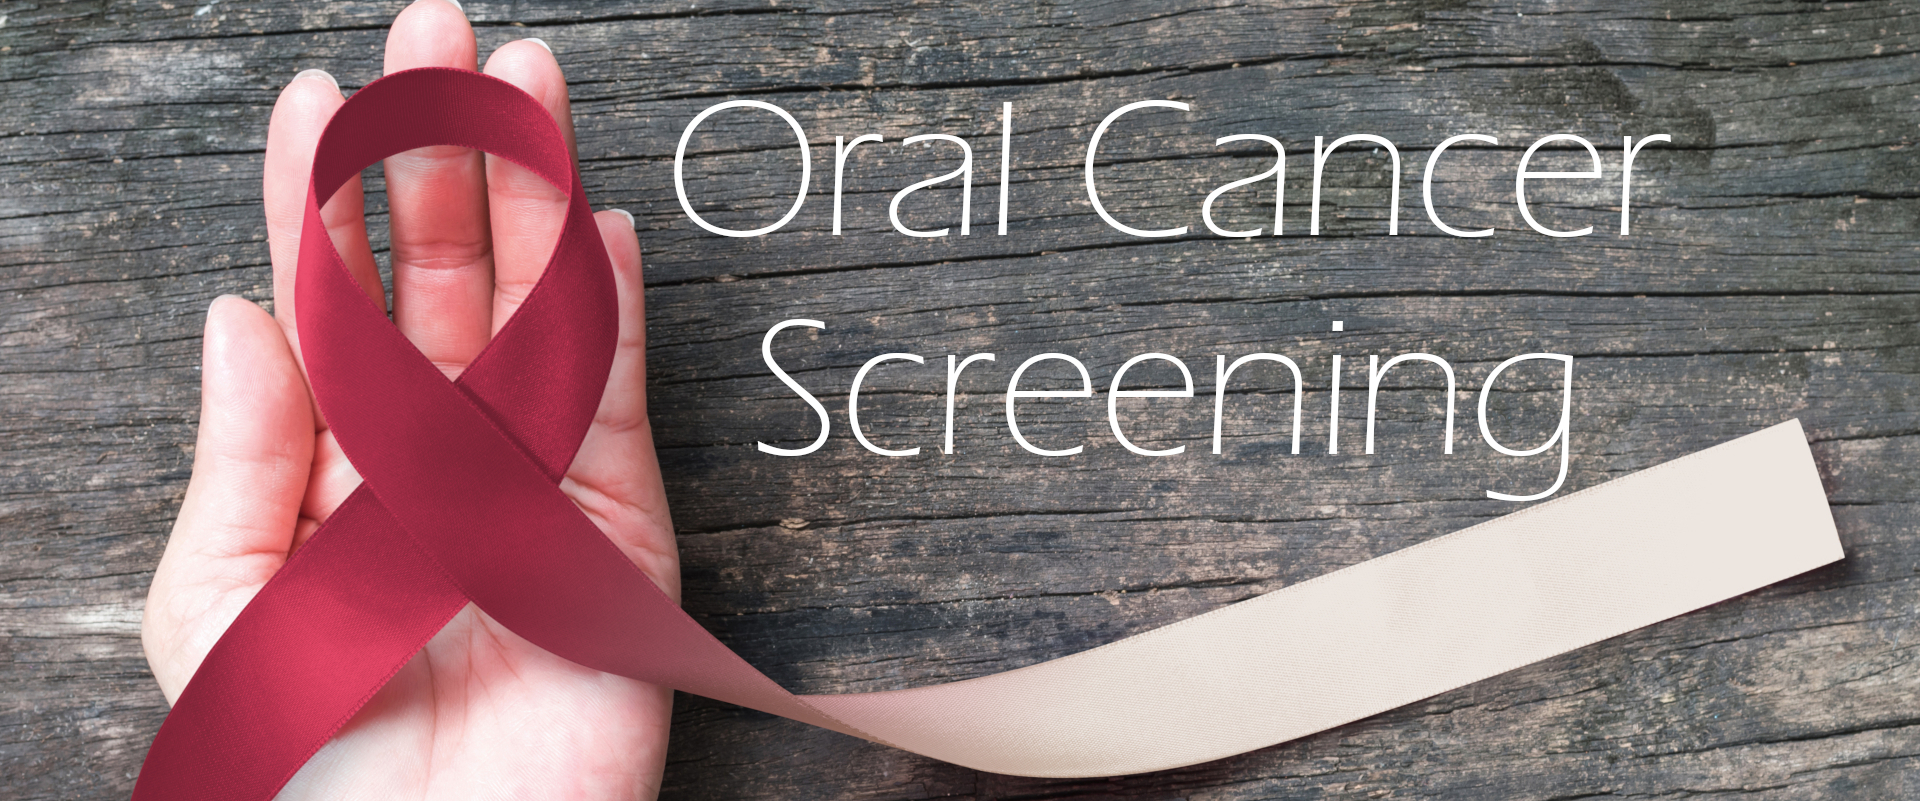 Oral Cancer Screening at the Dentist